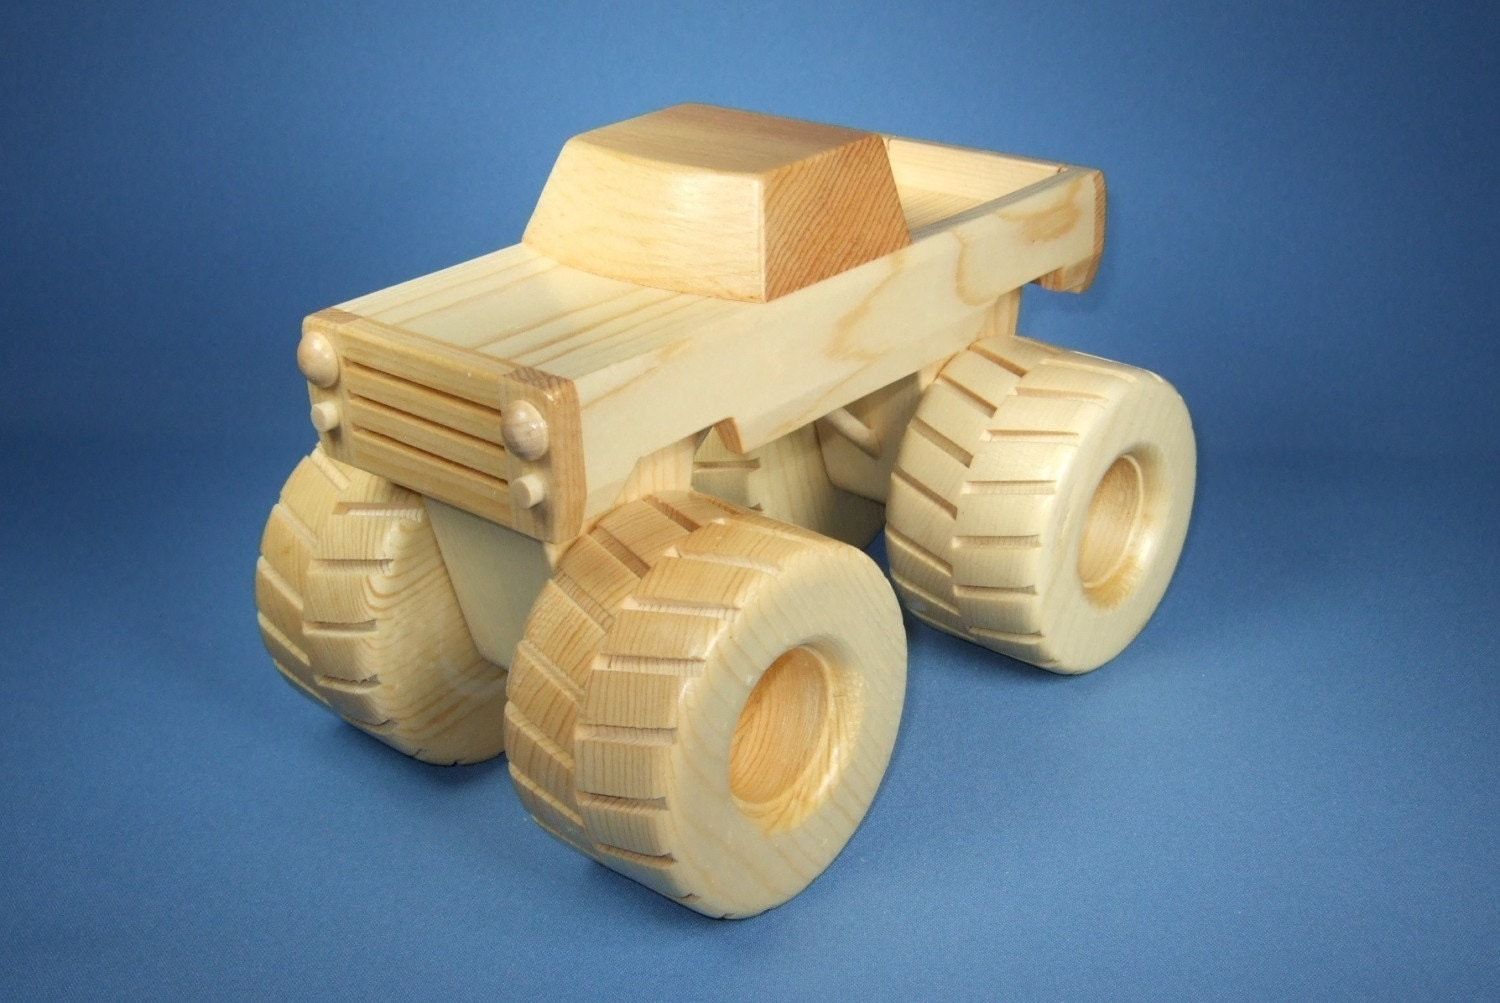 Wooden Toy Truck Plans Build log trucks, fire trucks,